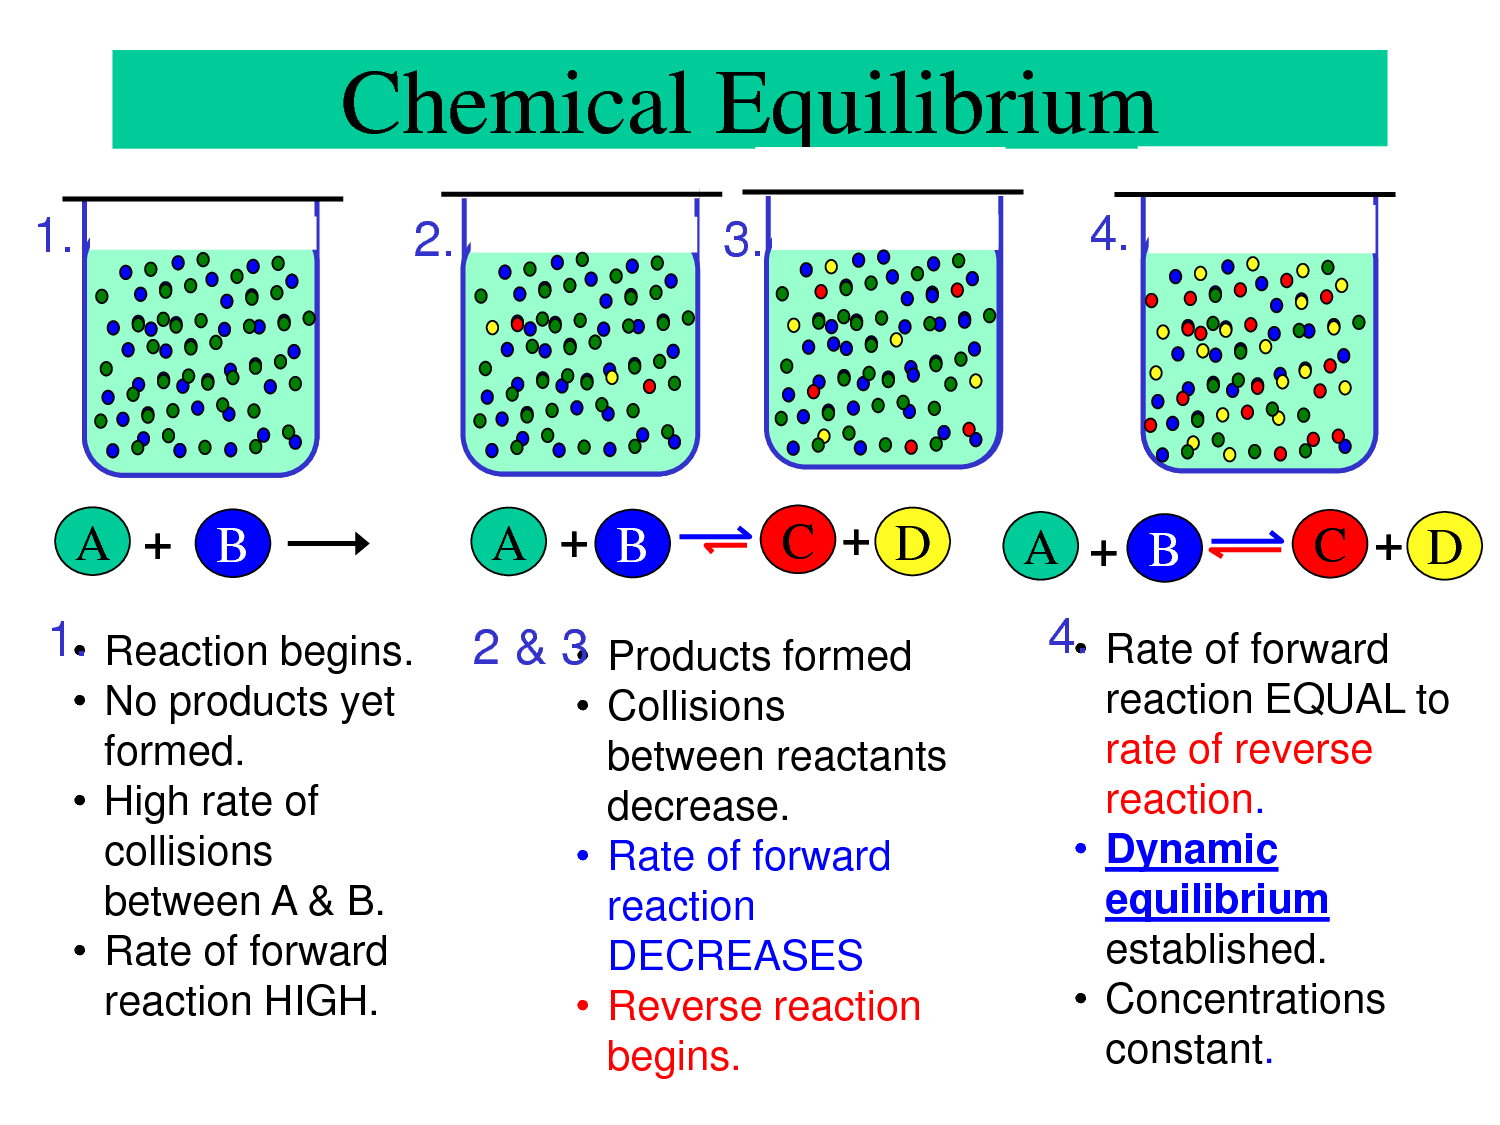 how to solve problems in chemical equilibrium will write your how to solve problems in chemical equilibrium will write your essaysfor money get a quote